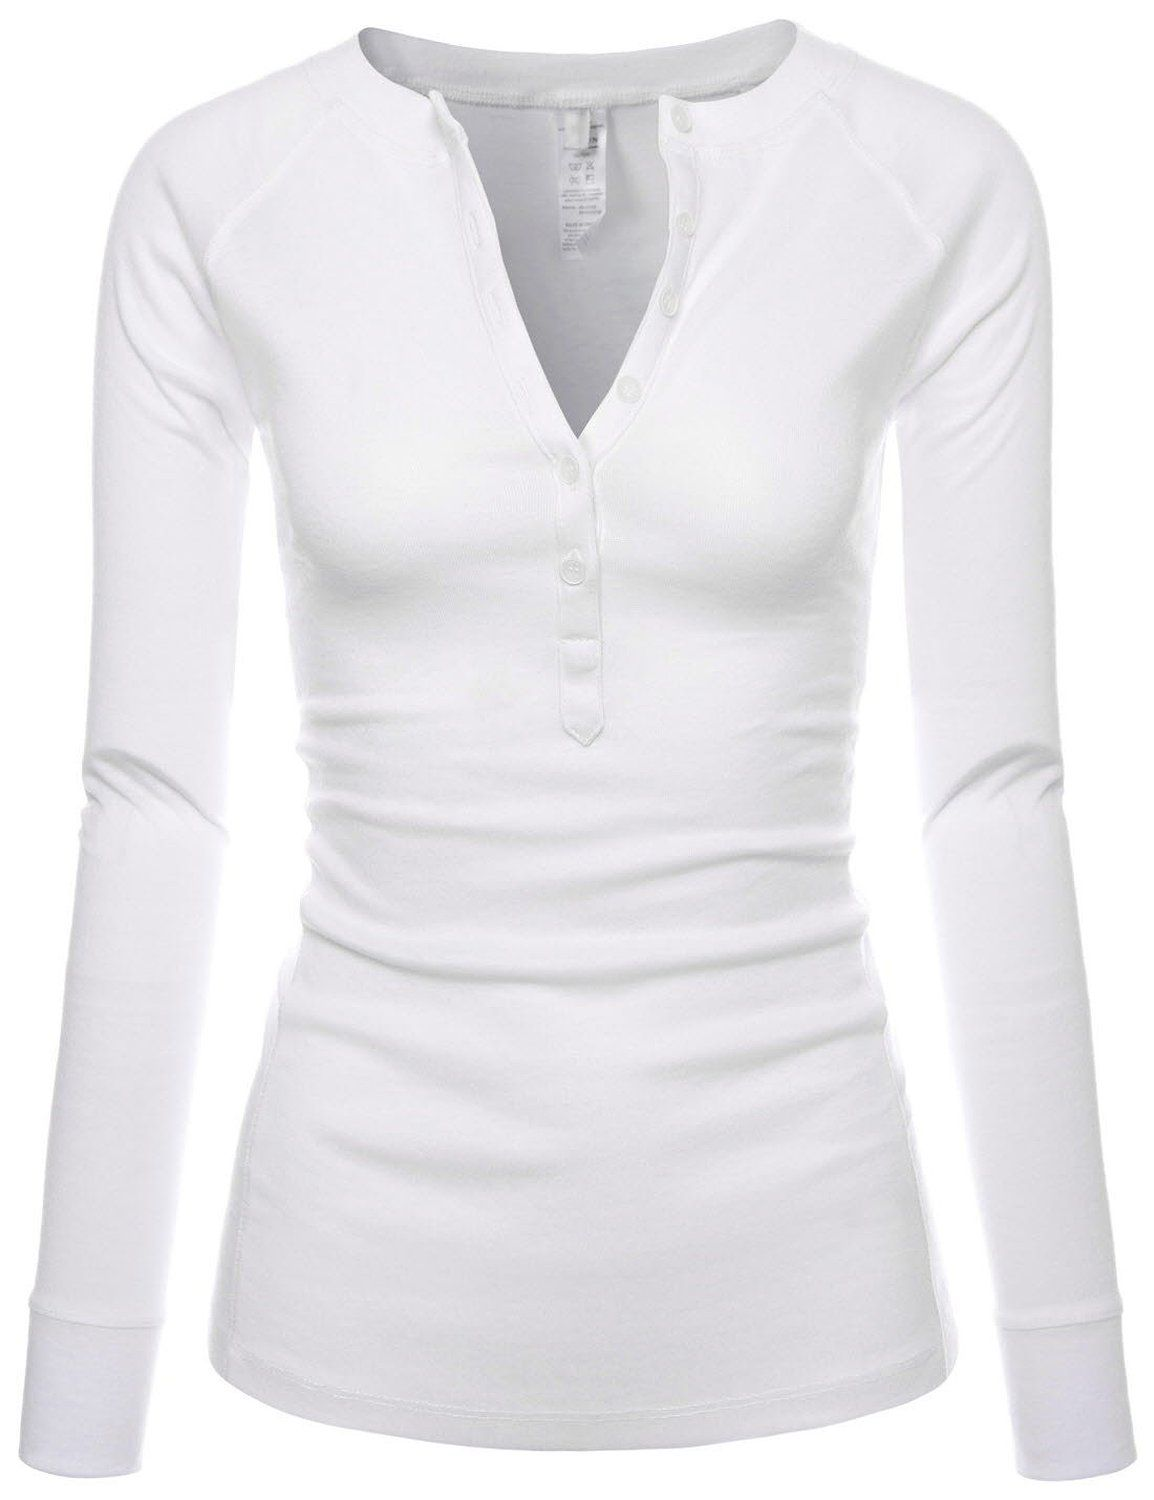 191374658e Womens Fitted Tee Henley Neck Long Sleeve Cotton Tshirts WHITE US L(Tag  size XL) at Amazon Women s Clothing store